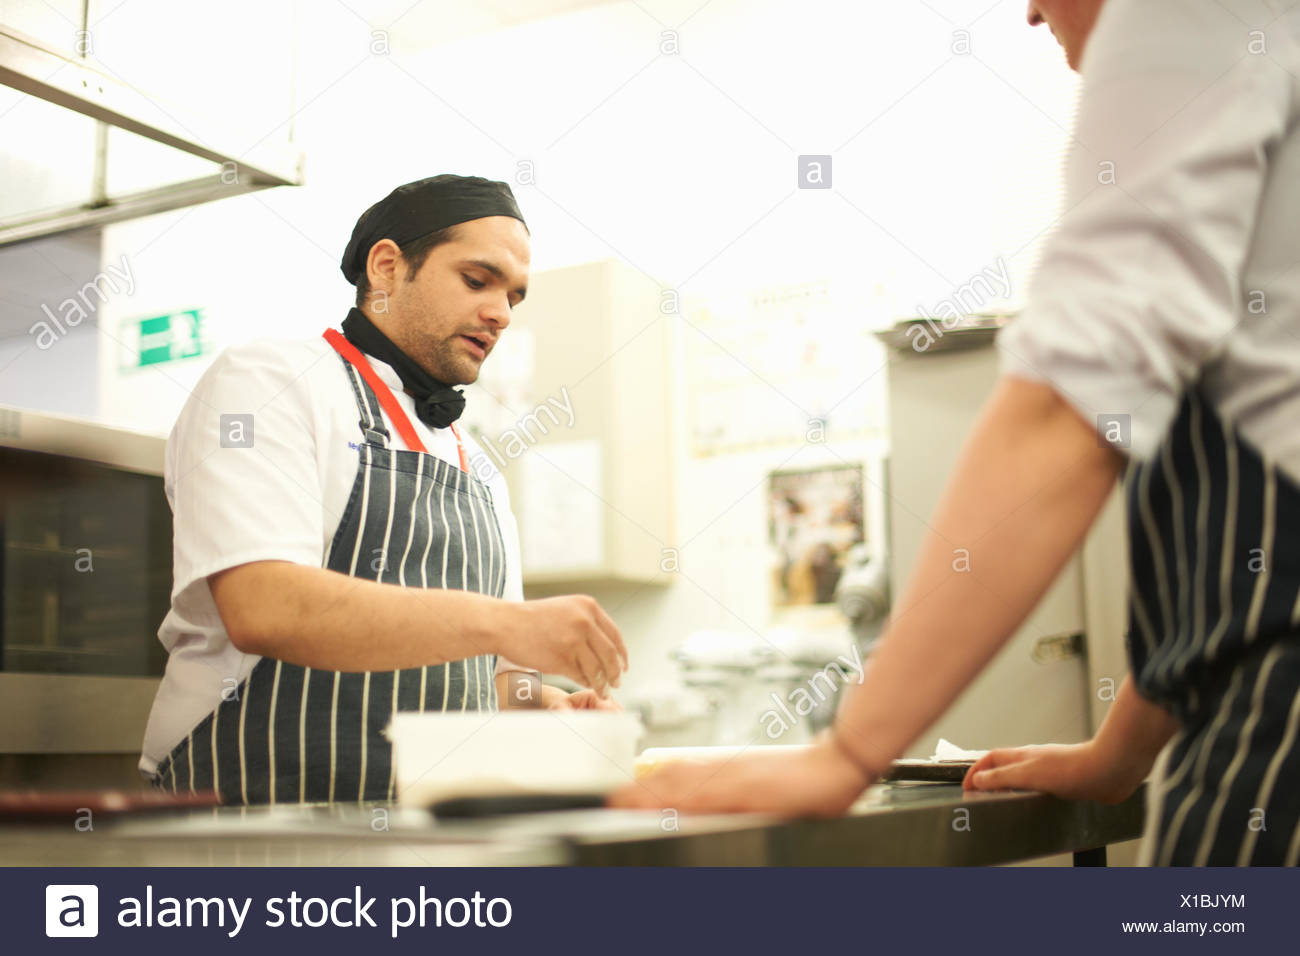 Chef lecturer demonstrating food preparation to teenage catering student at kitchen counter - Stock Image